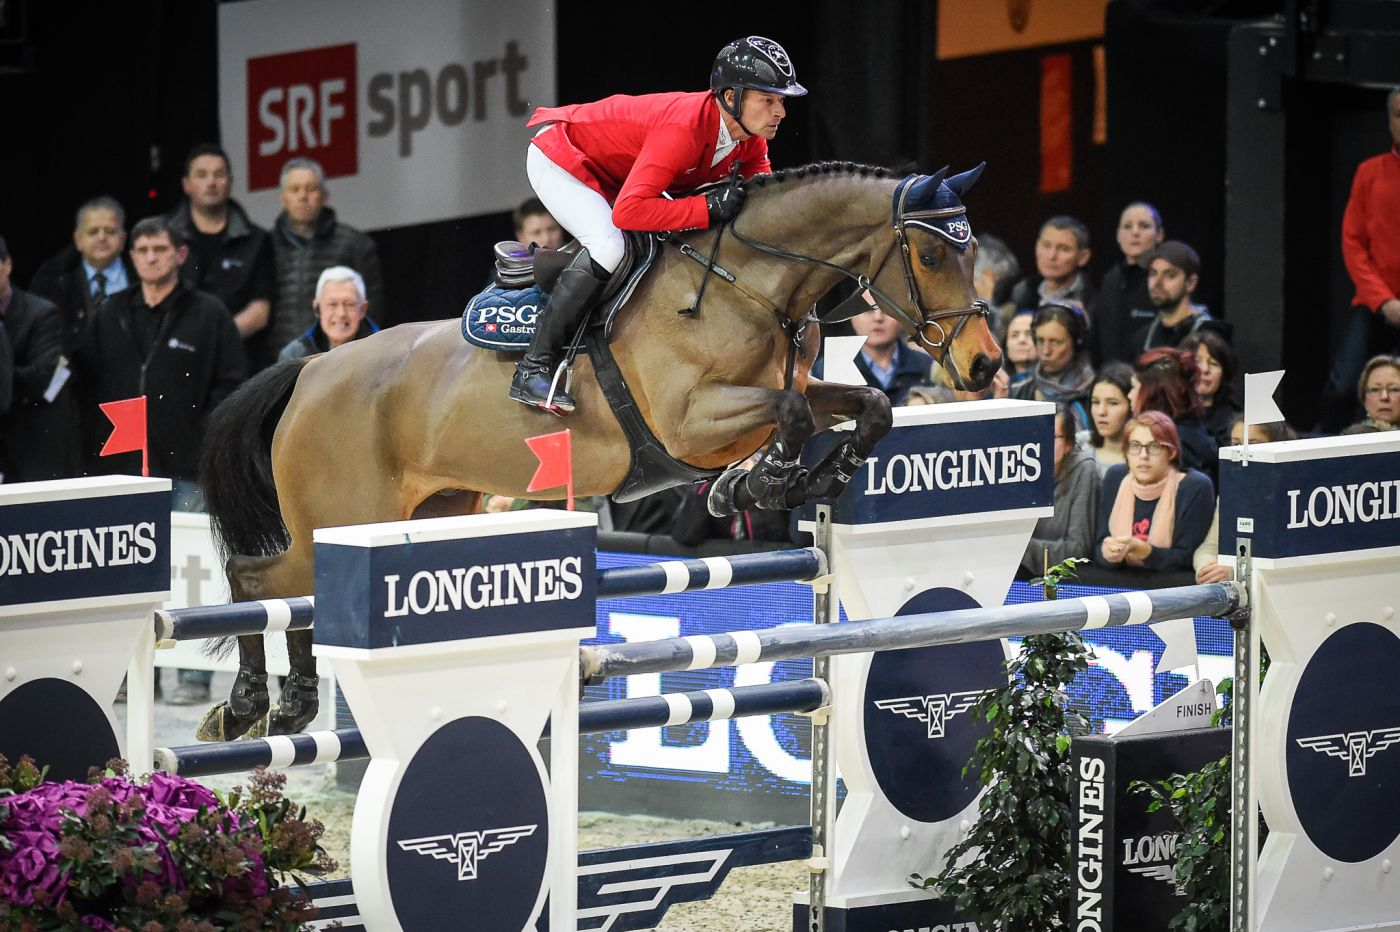 Longines Show Jumping Event: Pius Schwizer wins the Swiss leg of the Longines FEI World Cup™ in Zurich 4